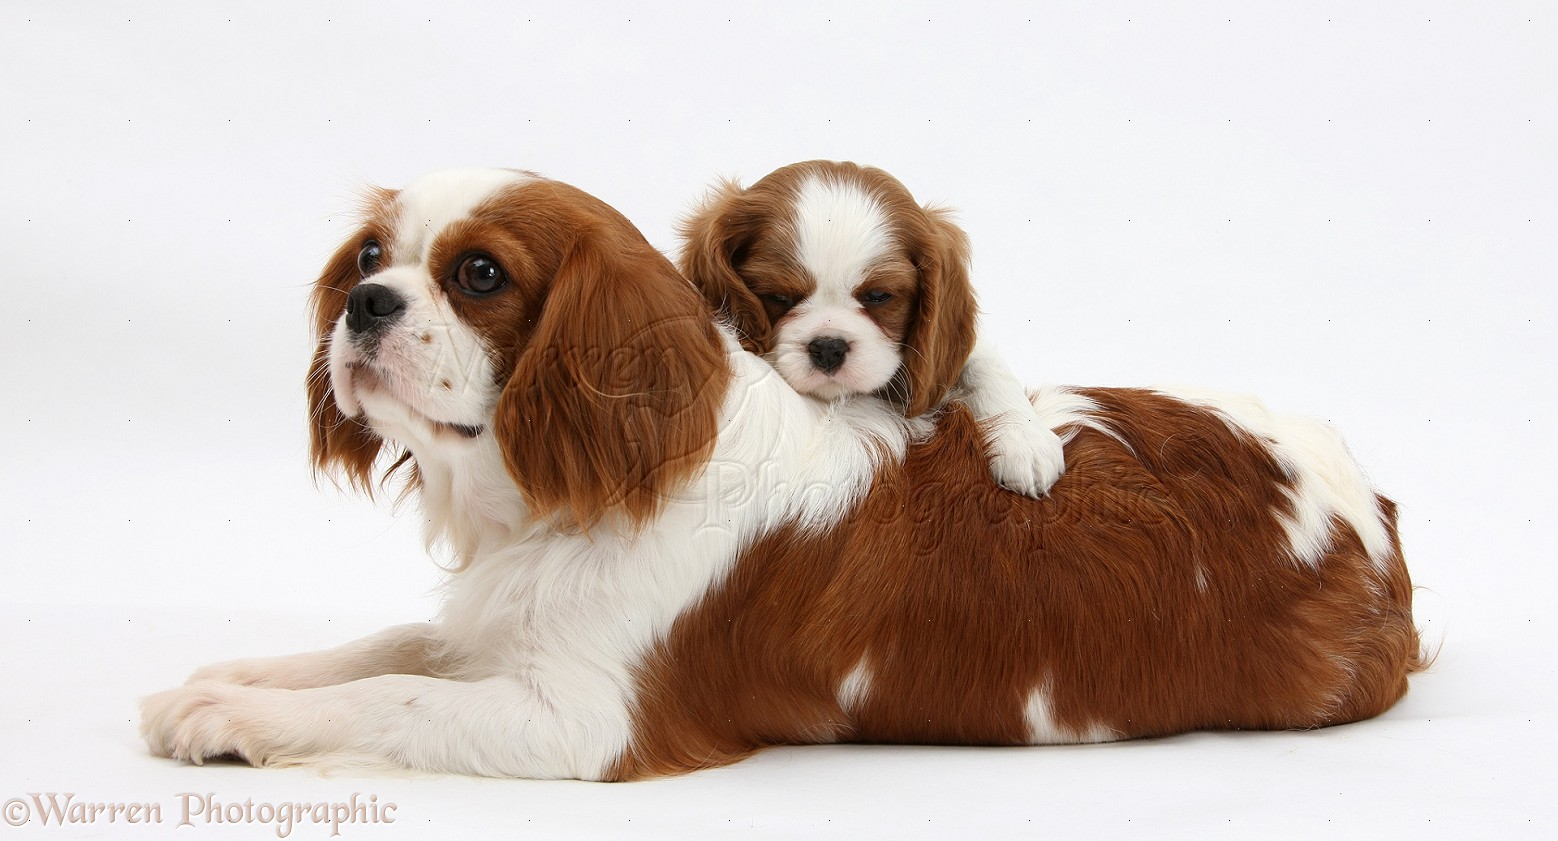 21907 blenheim cavalier king charles spaniel mother and pup white background